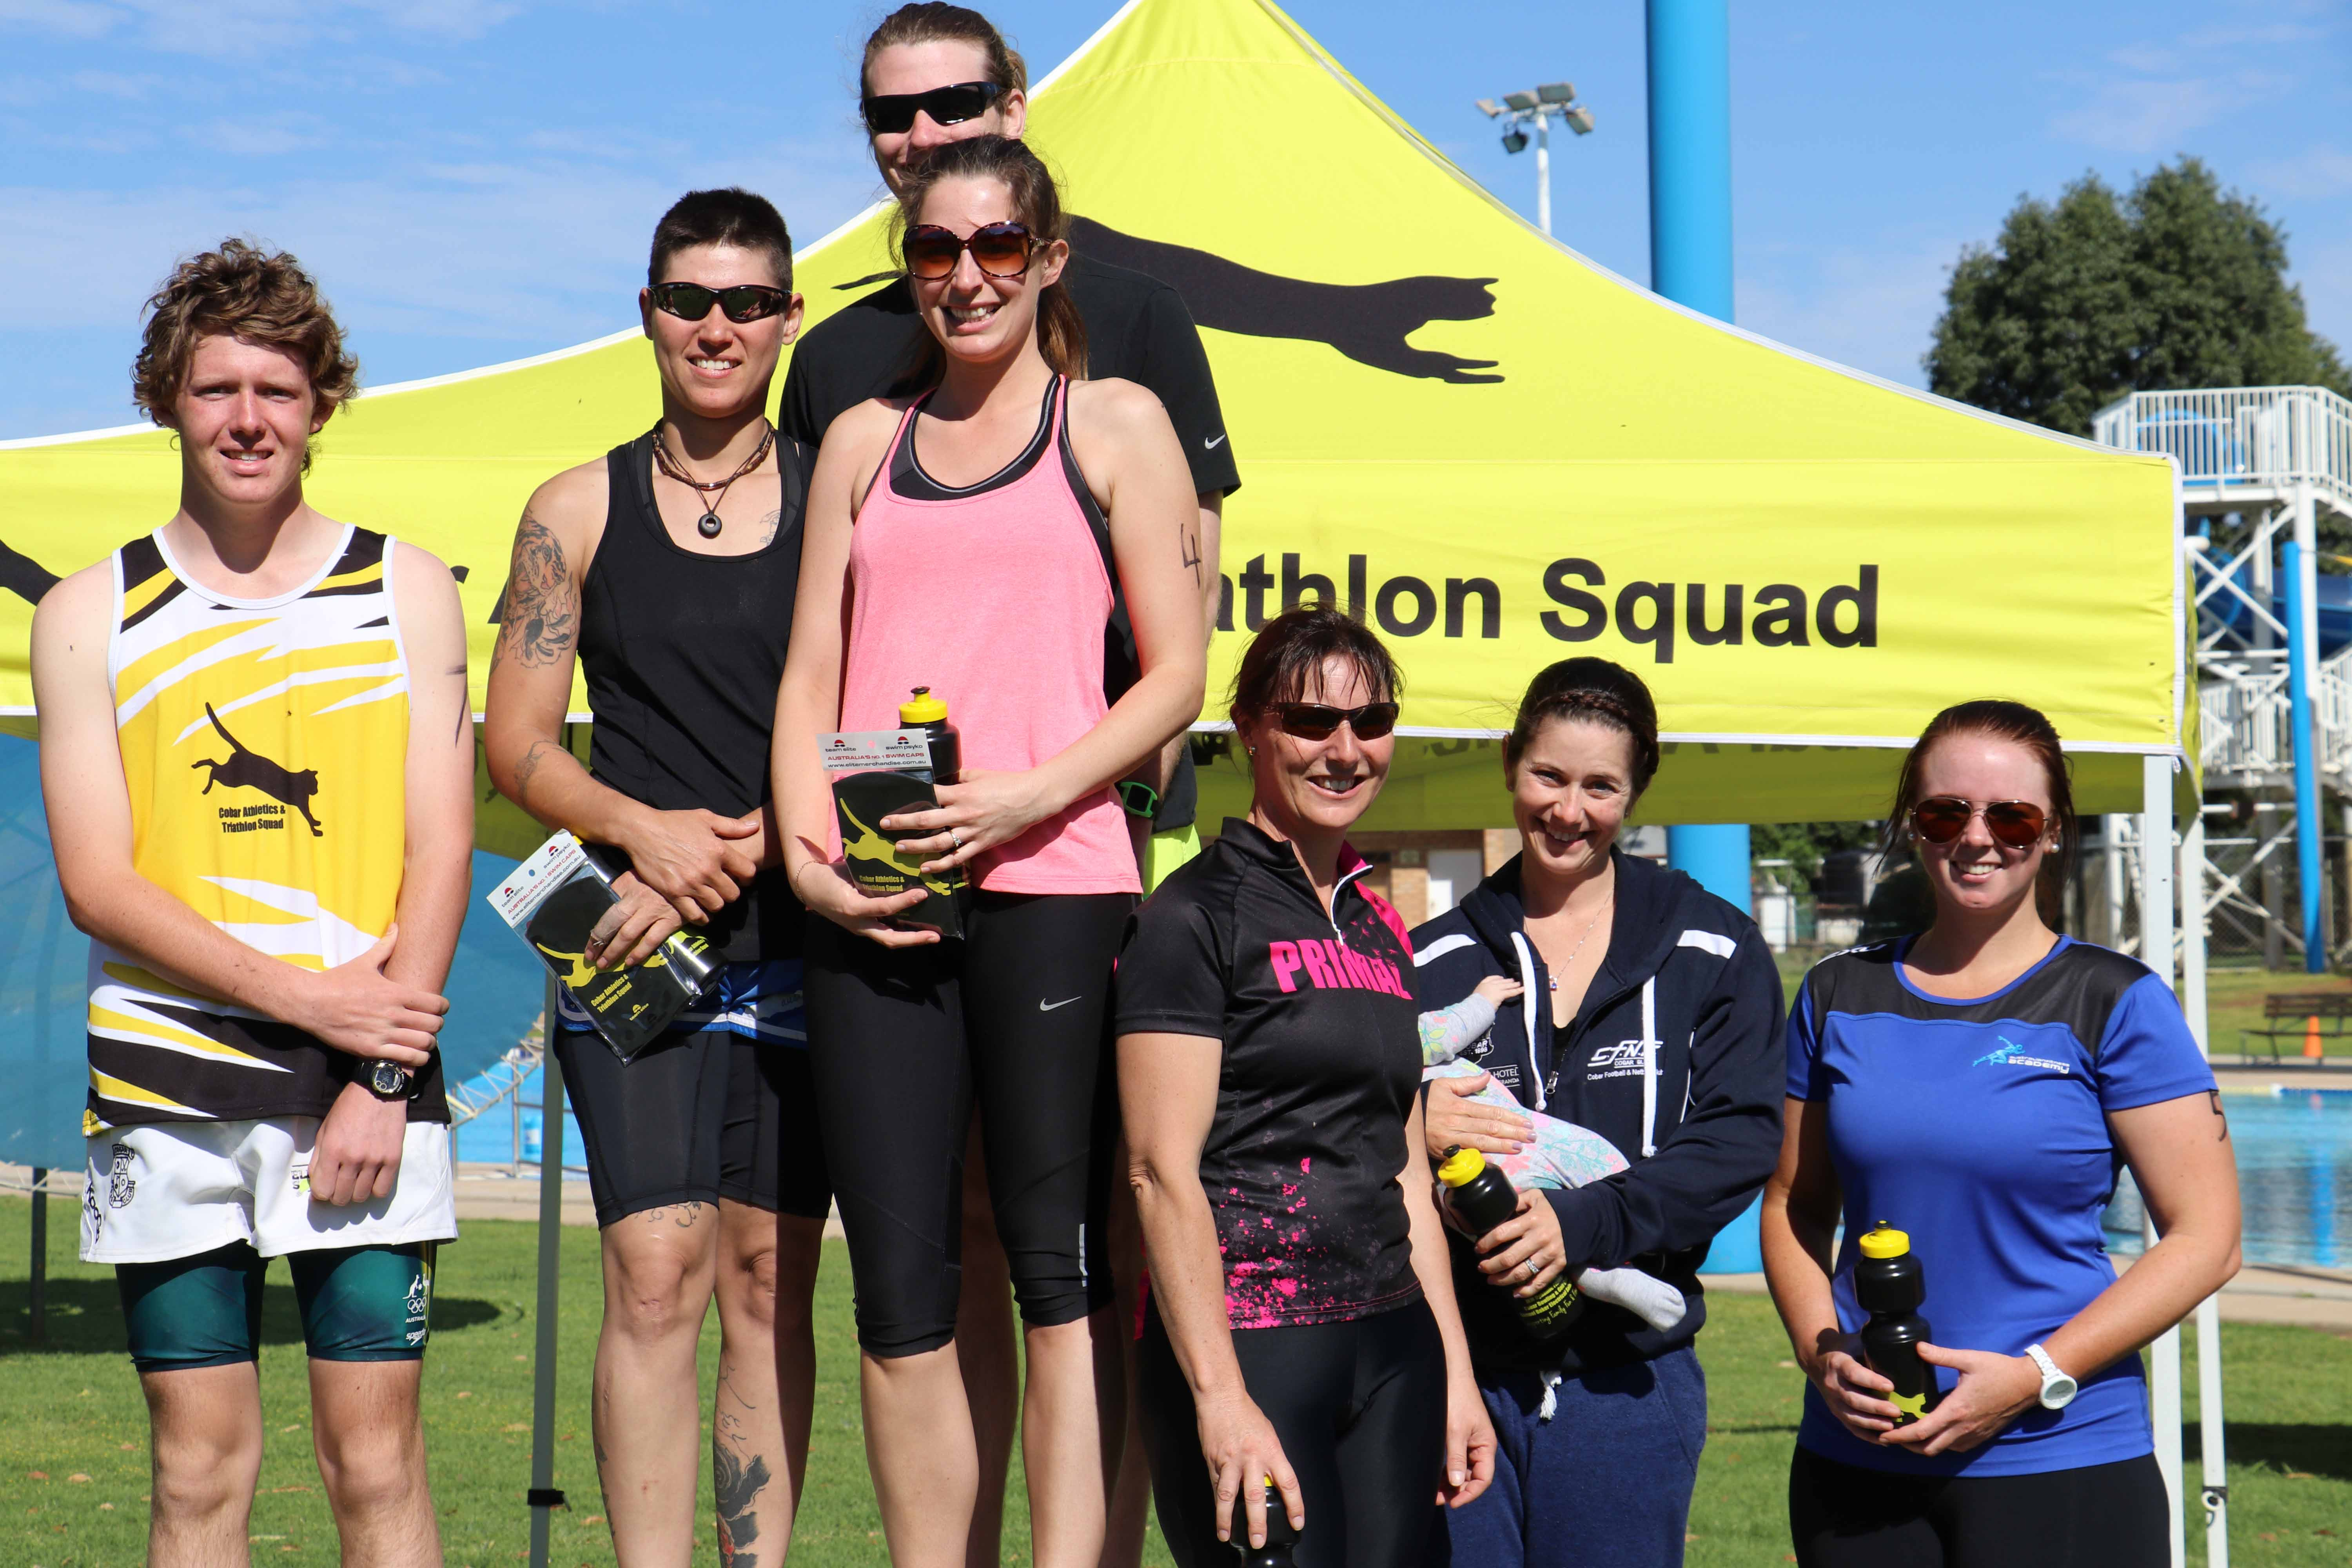 The overall winners of the CATS October handicapped triathlon were: Thomas Jones (second), the Just Do It! team of Shakira Colling, Aaron Finn and Tiara Ingold (first) and the TTP team of Trudy Griffiths, Tanya Gilbert and Penny Cowell (third).